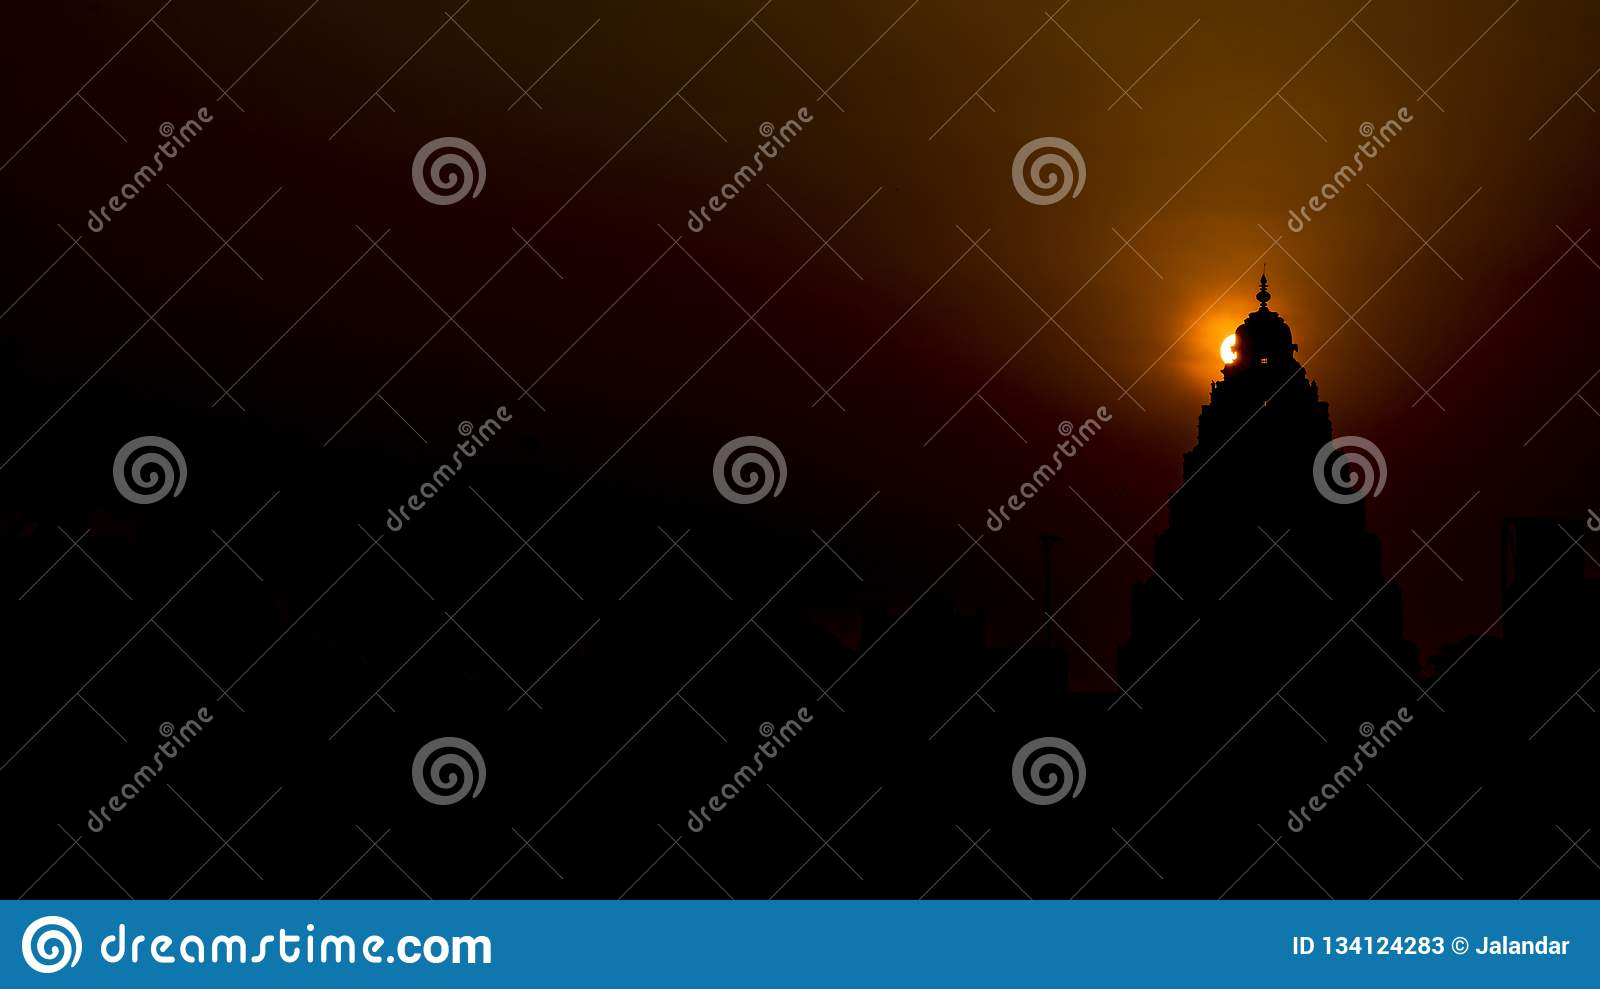 Sunrise : Halo behind the Top of a Hindu temple.